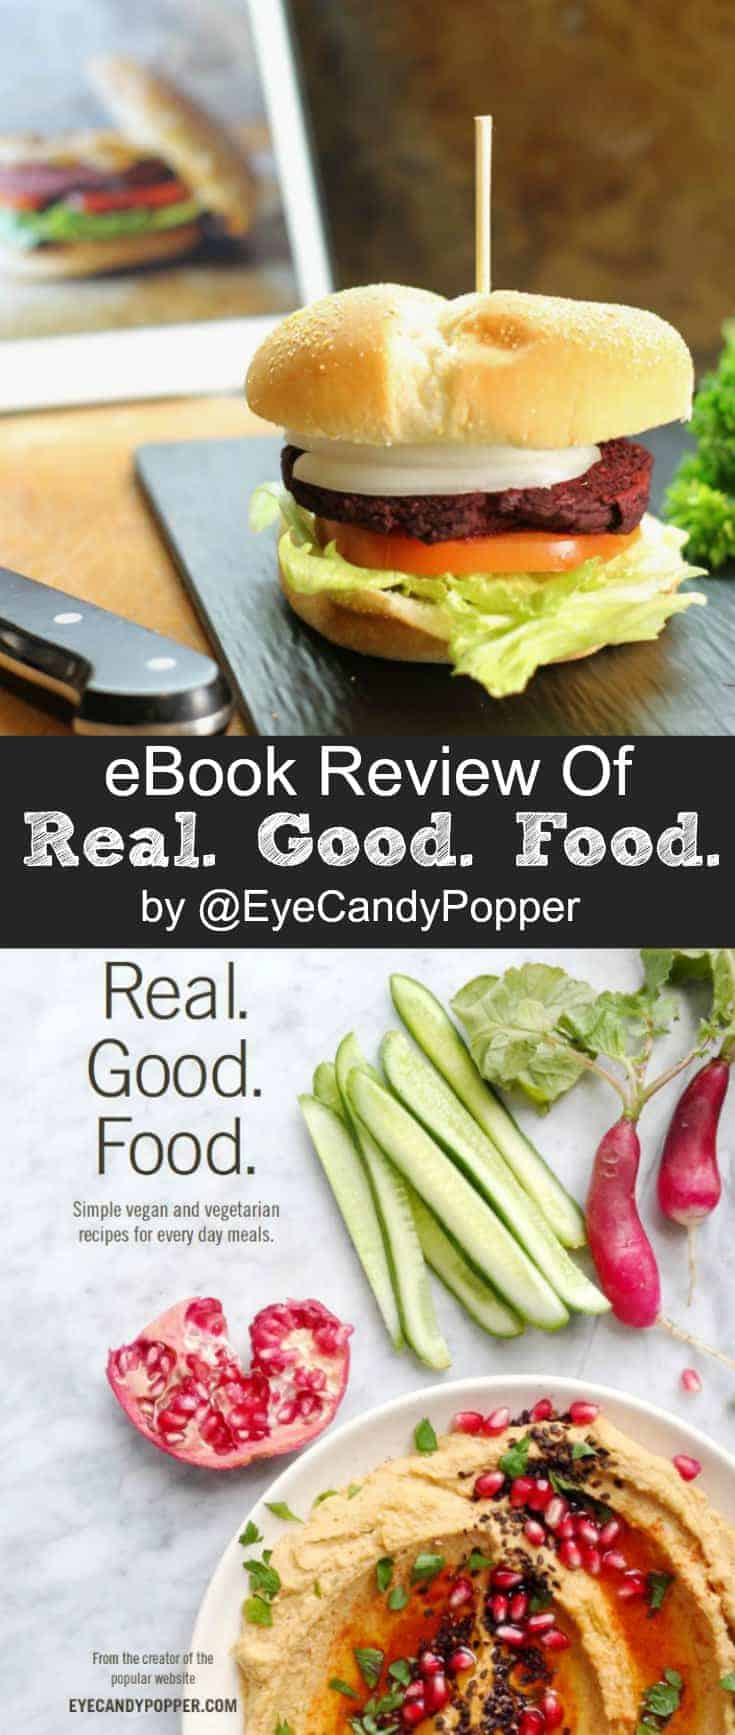 Learn how to start eating nutritious, organic  foods with Gabrielle Gottschalk's ecookbook 'Real. Good. Food.The cookbook provides you with 40 organic meal ideas to help you change the way you eat and think about food. #healthyeating #organic #veganrecipes #vegetarian #mealideas #glutenfree #cleaneating